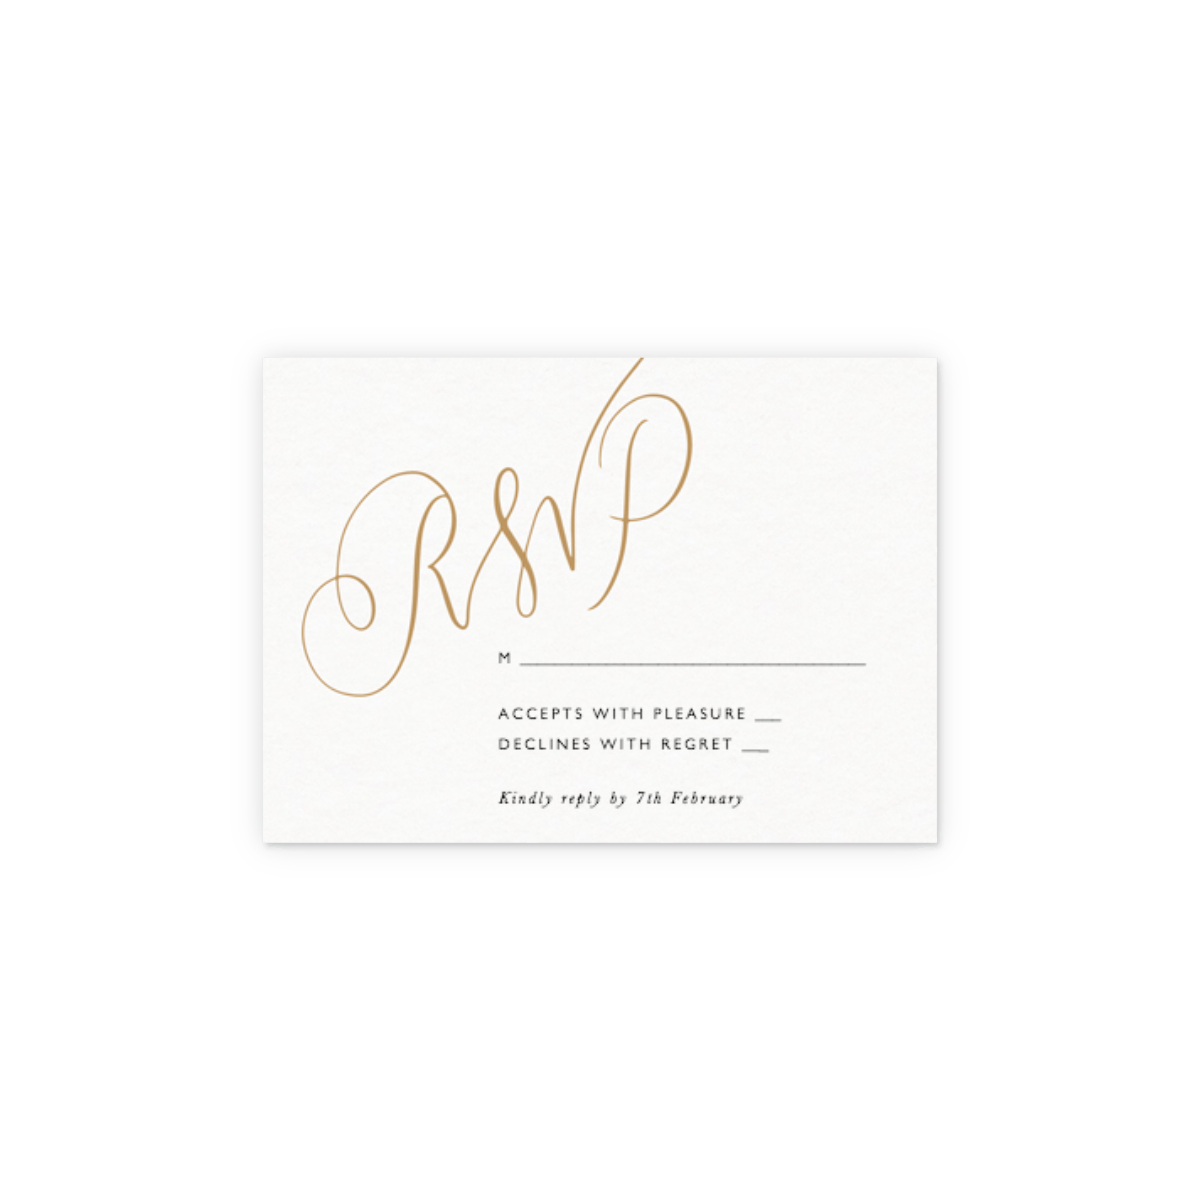 Https%3a%2f%2fwww.papier.com%2fproduct image%2f16063%2f13%2fthe marriage of calligraphy gold 4250 rsvp 1532444742.png?ixlib=rb 1.1